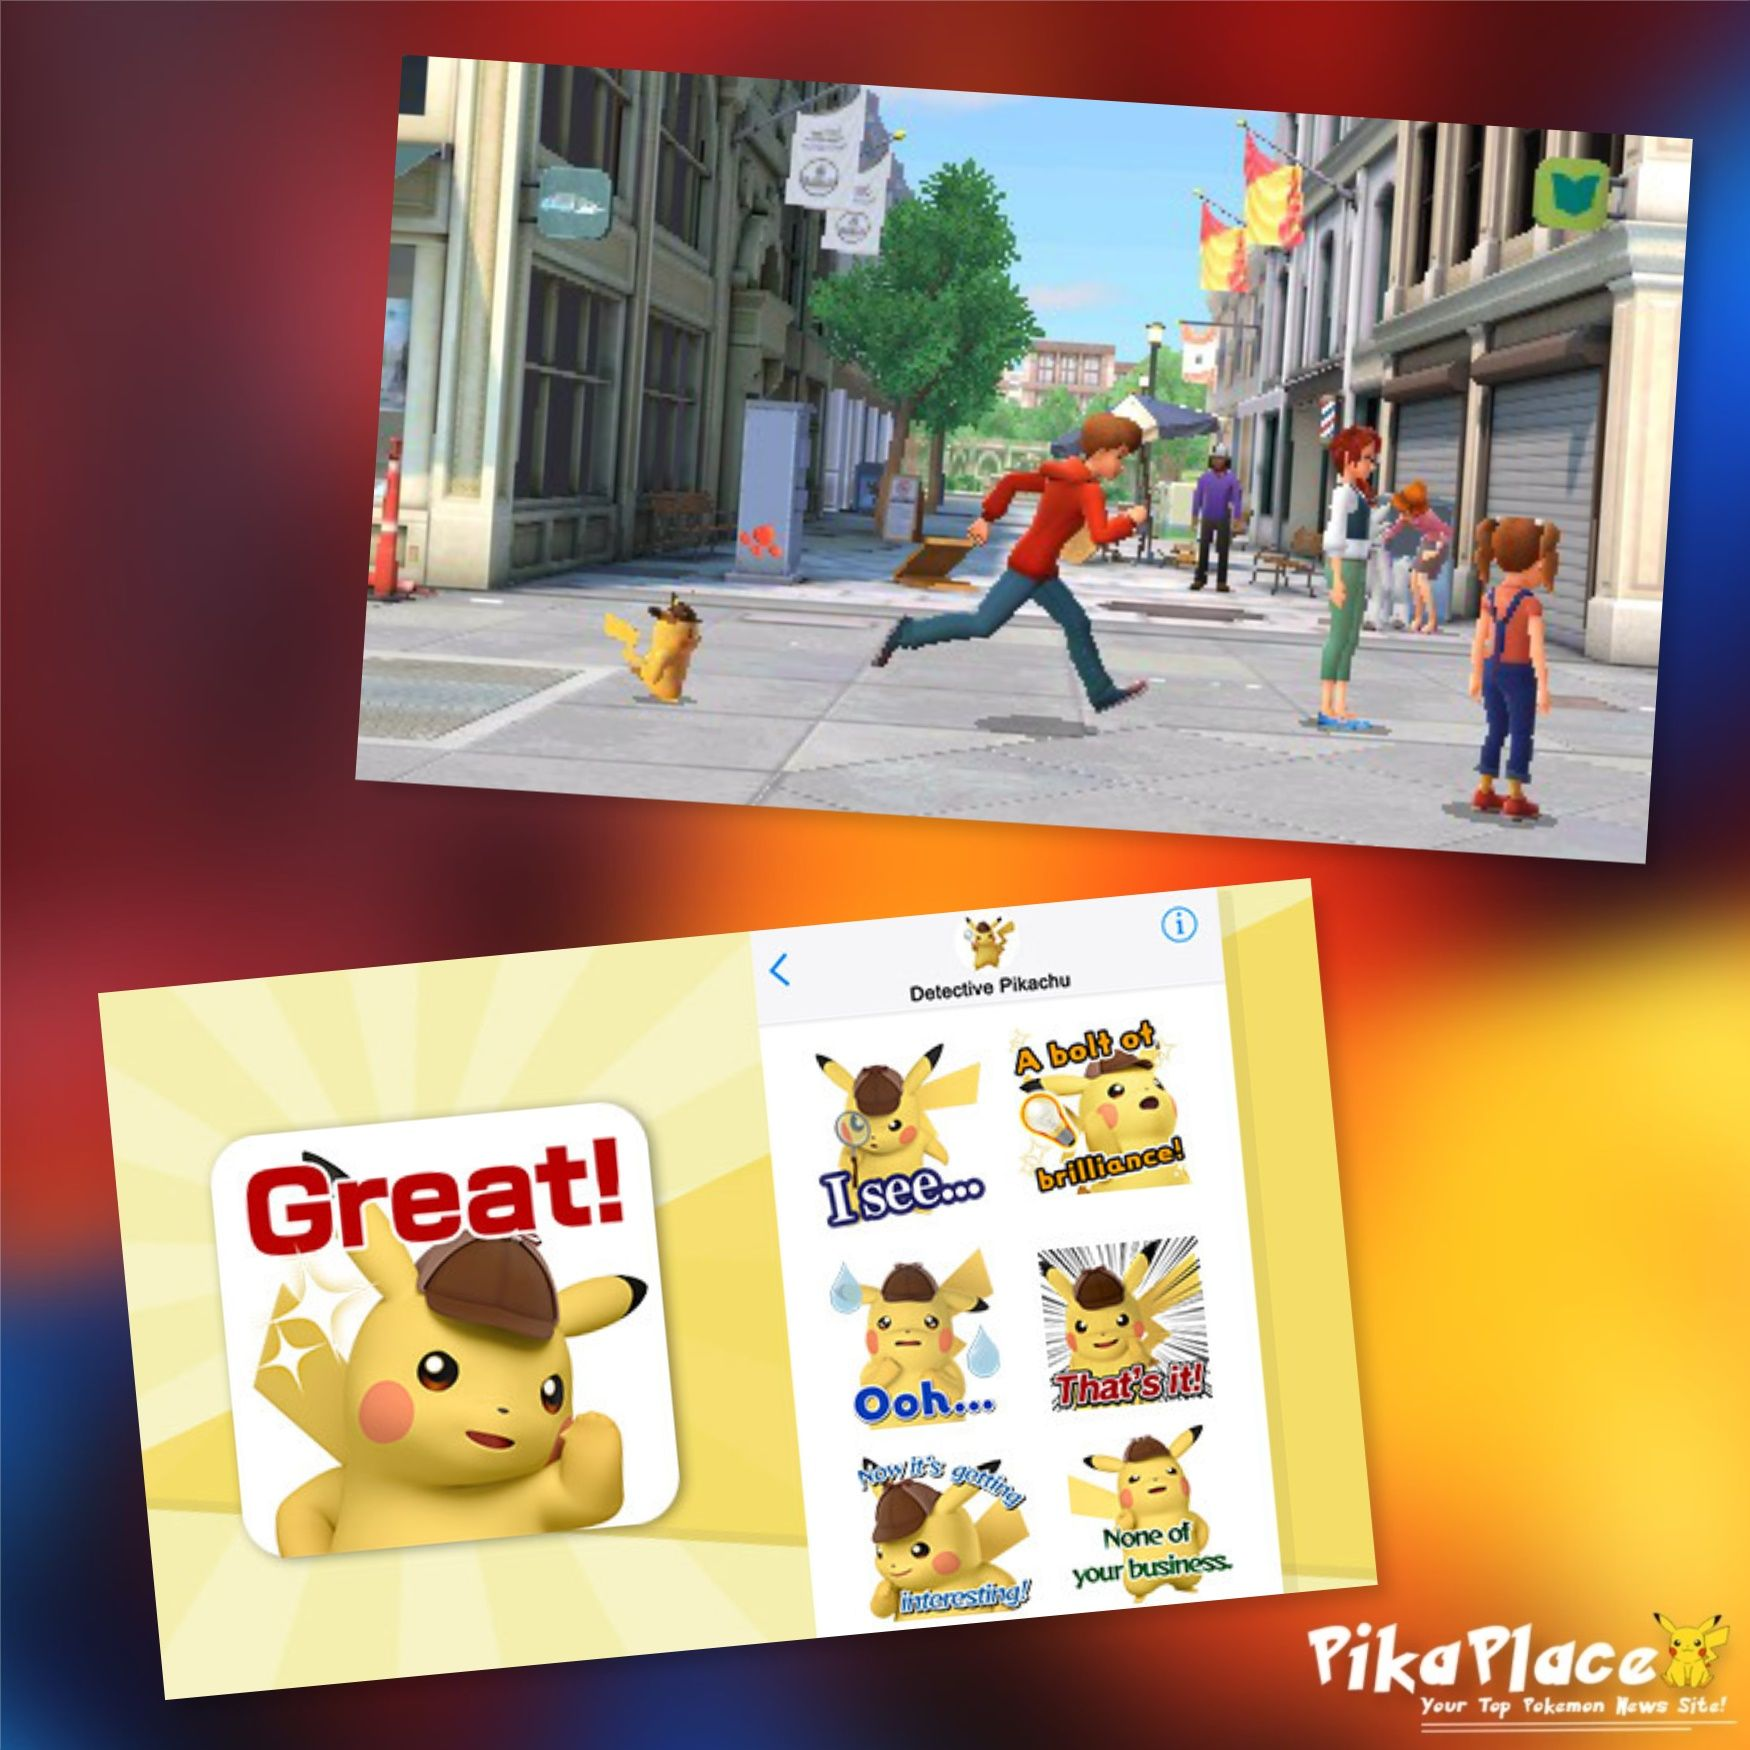 Detective Pikachu News Imessage Stickers Dual Screen Gameplay And